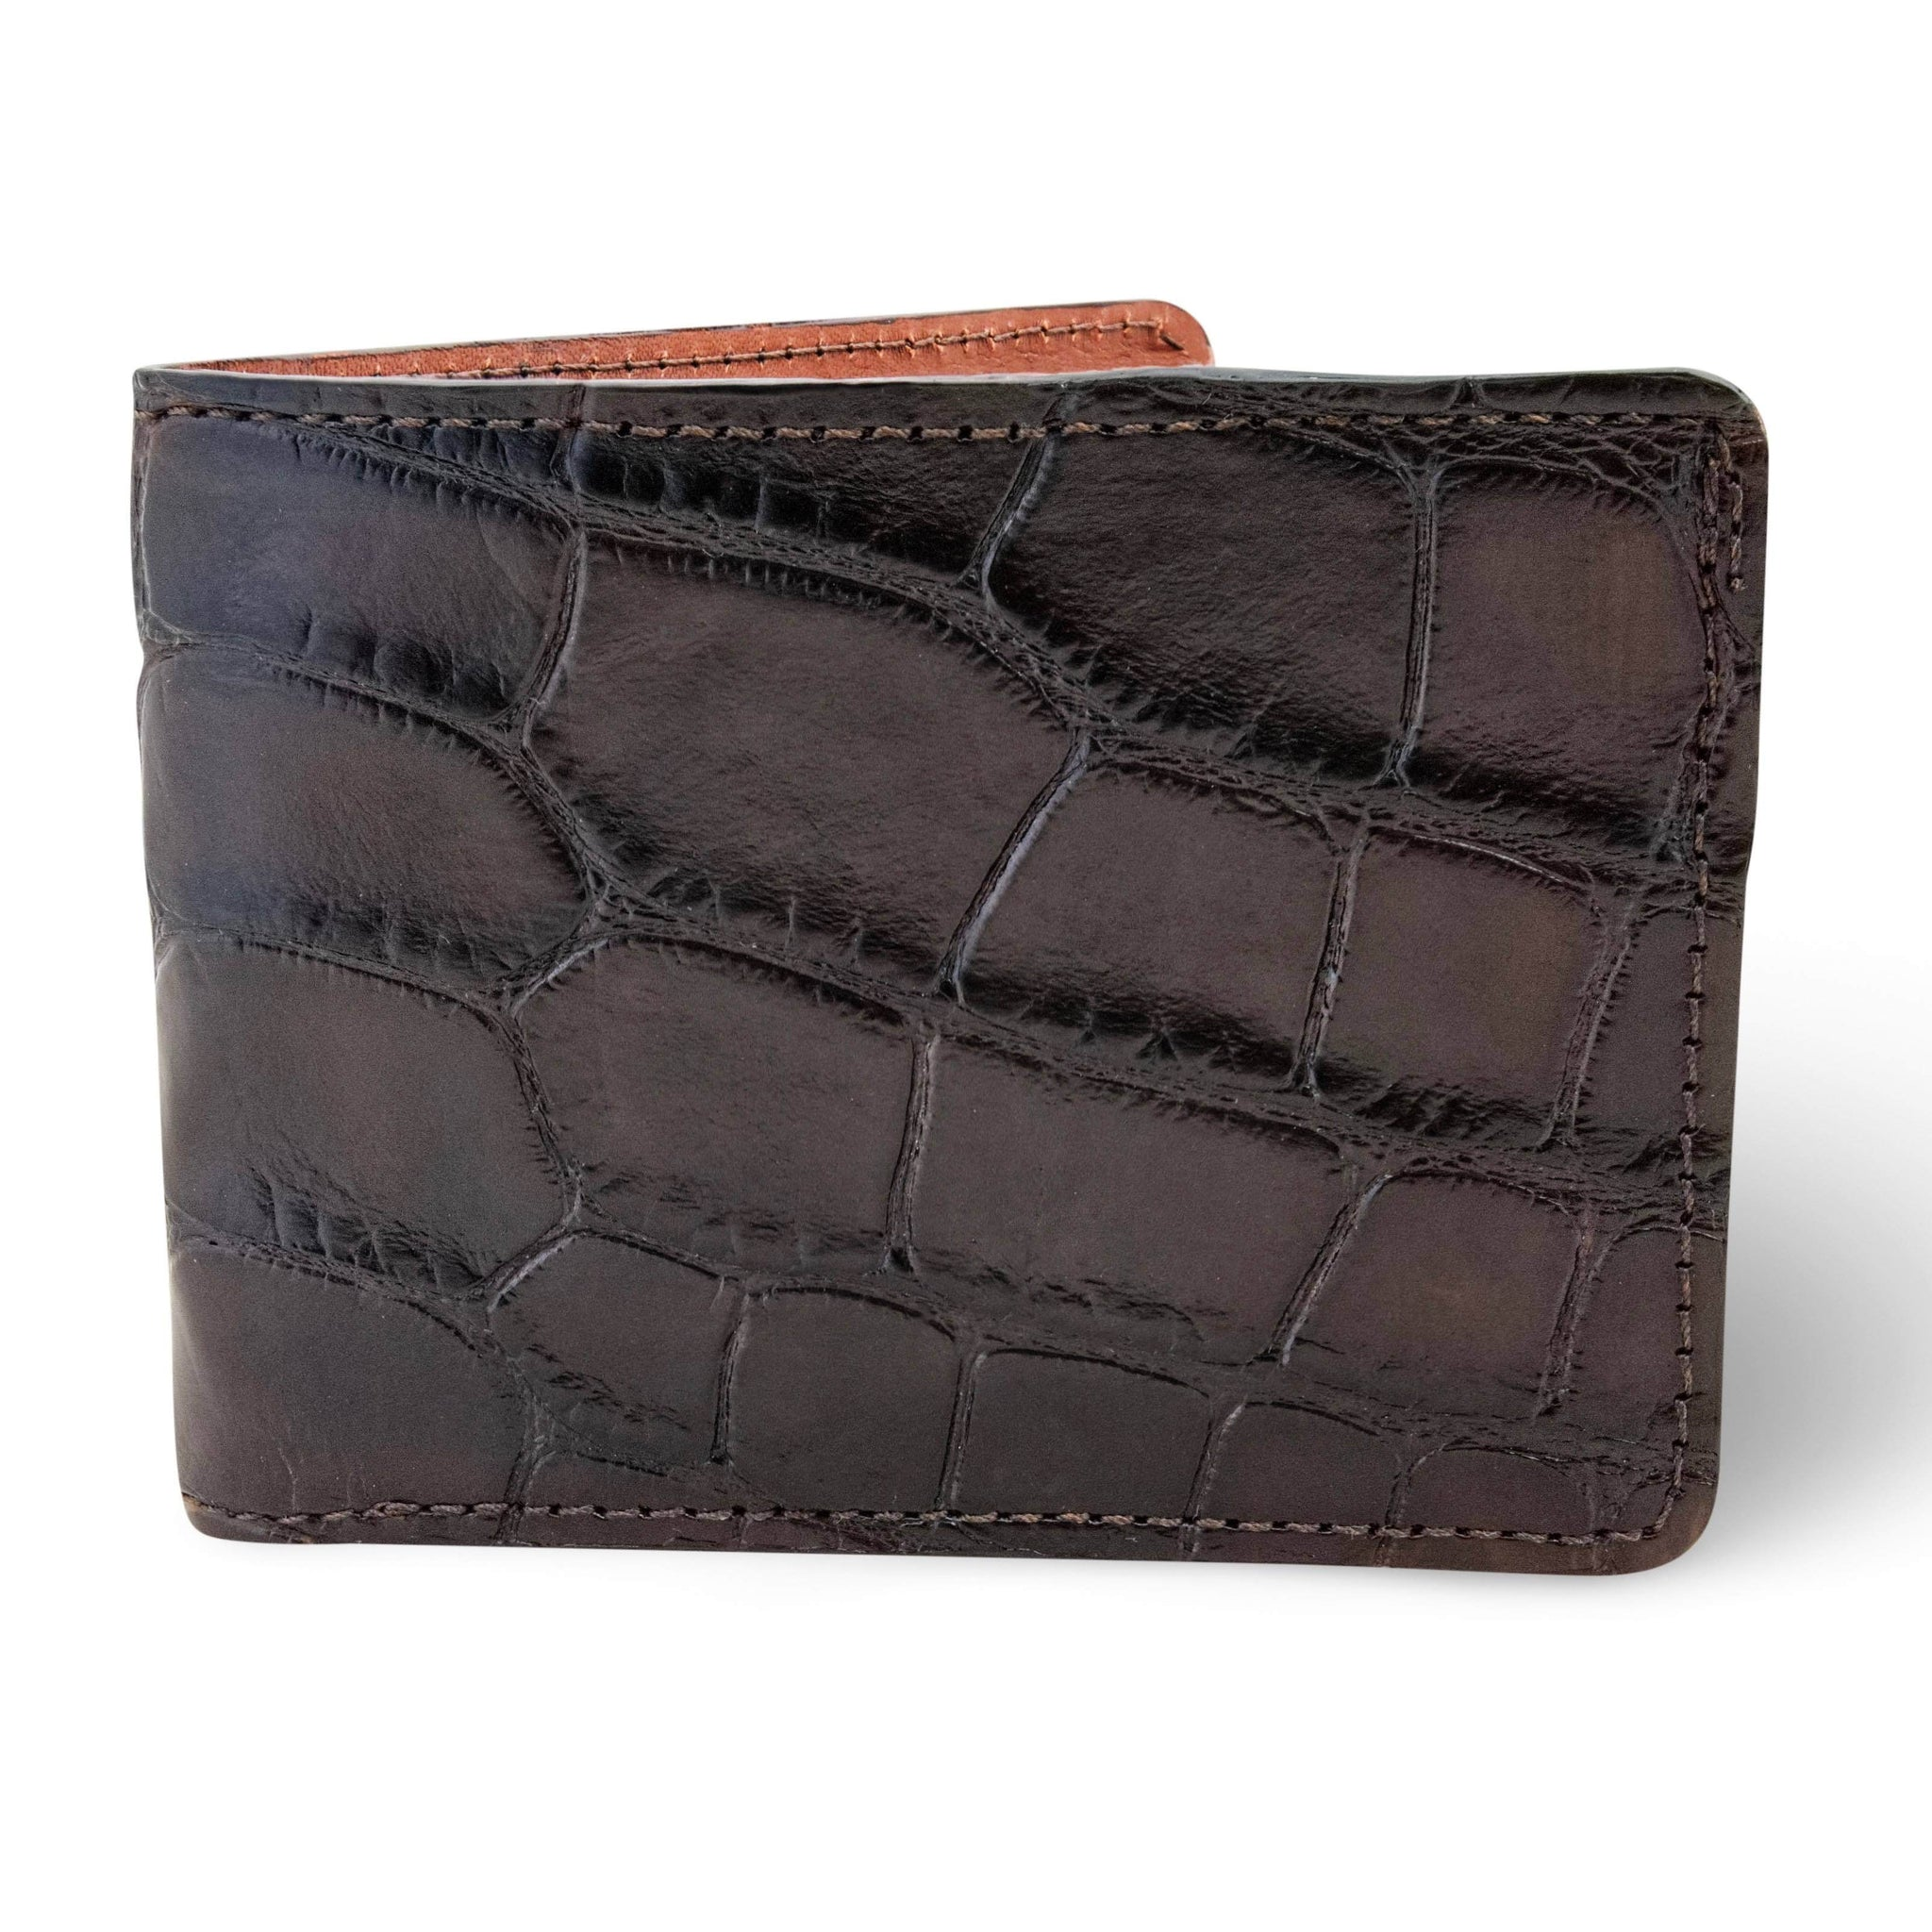 Black Alligator Skin Wallet